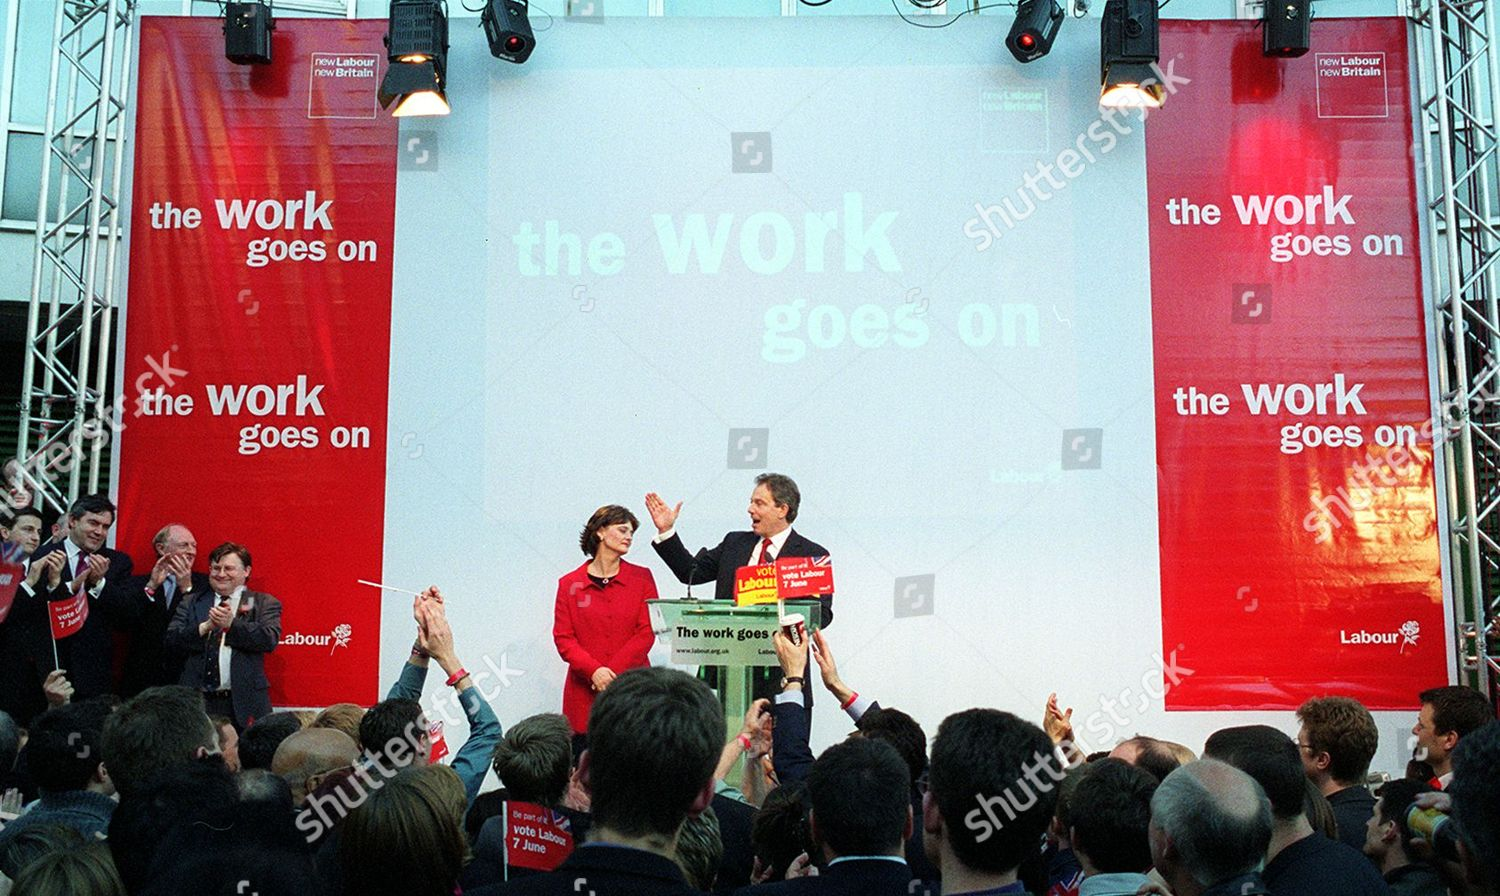 tony-blair-and-cherie-blair-general-election-2001-labour-victory-scenes-at-millbank-addressing...jpg